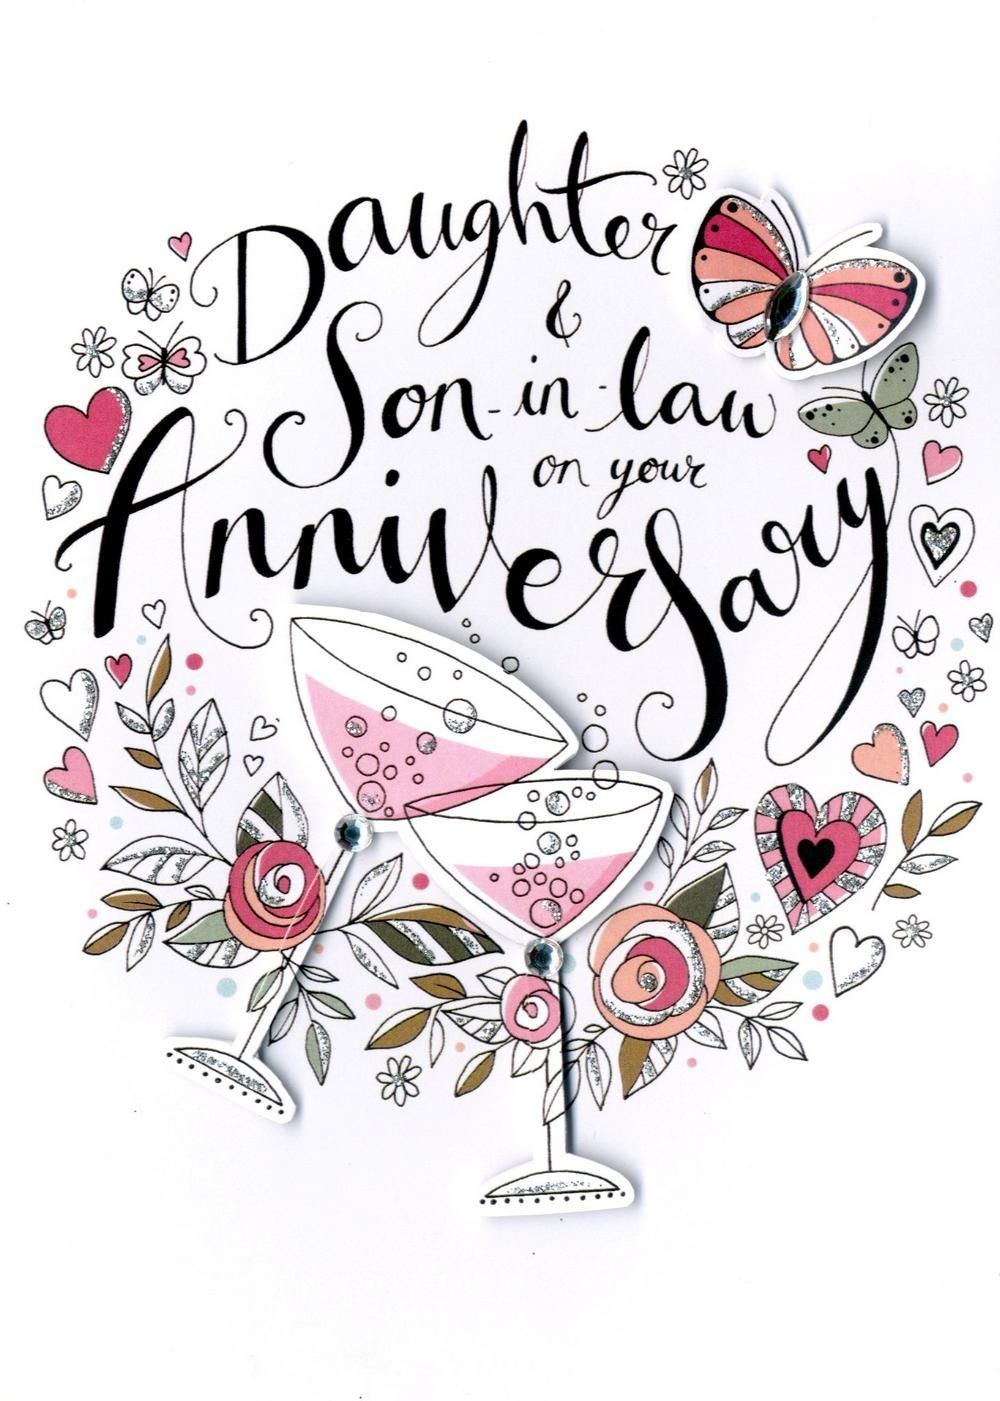 Daughter Son In Law Anniversary Card Wedding Anniversary 2019